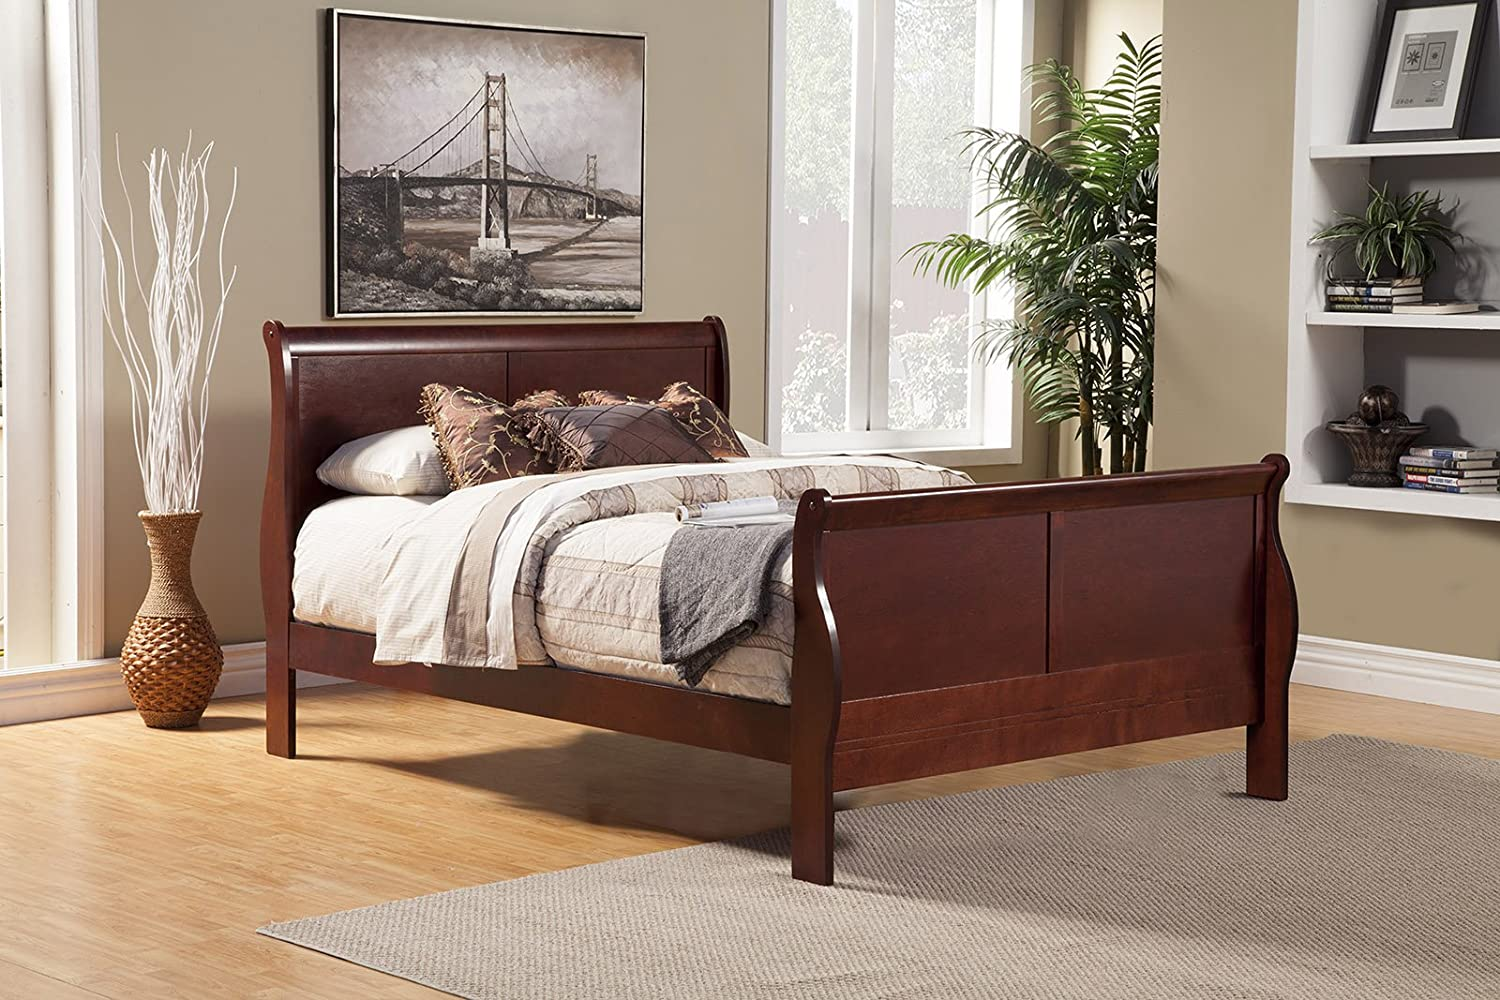 High Quality Amazon.com: Alpine Furniture Louis Philippe II Sleigh Bed: Home U0026 Kitchen